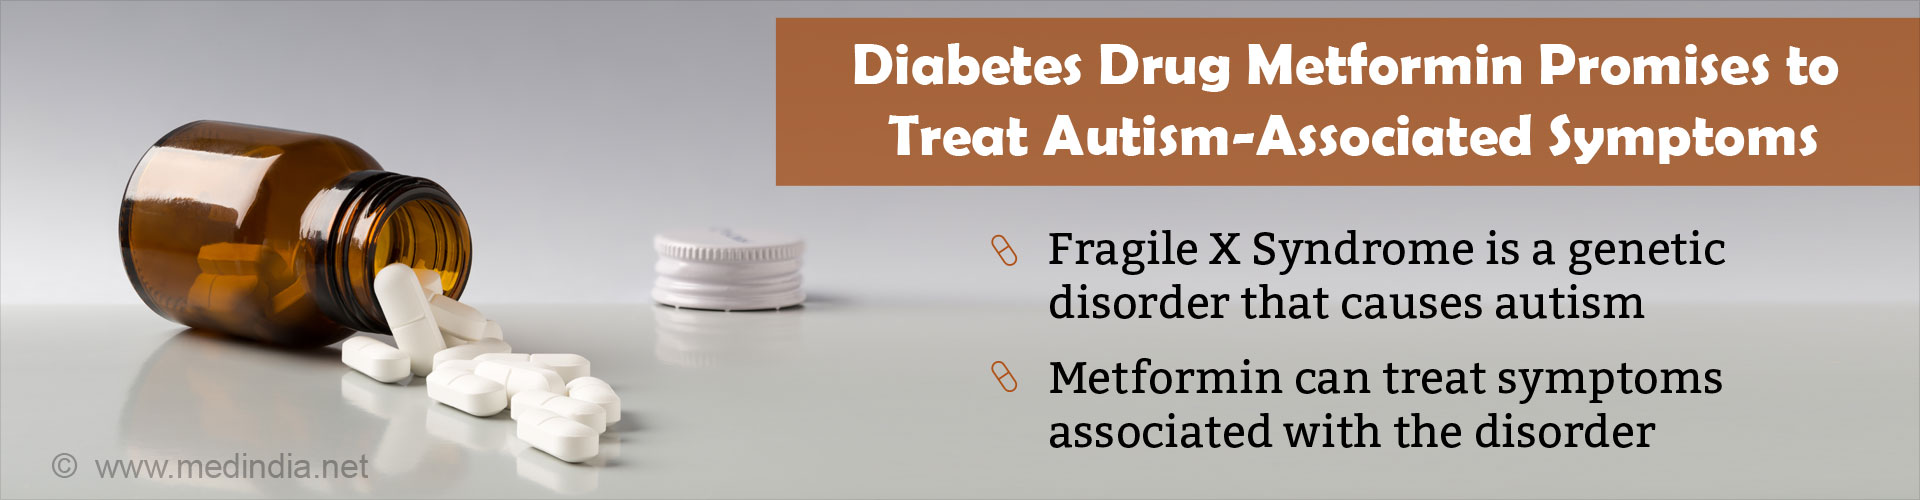 Diabetes Drug Metformin can Treat Symptoms of Autism-Associated Condition